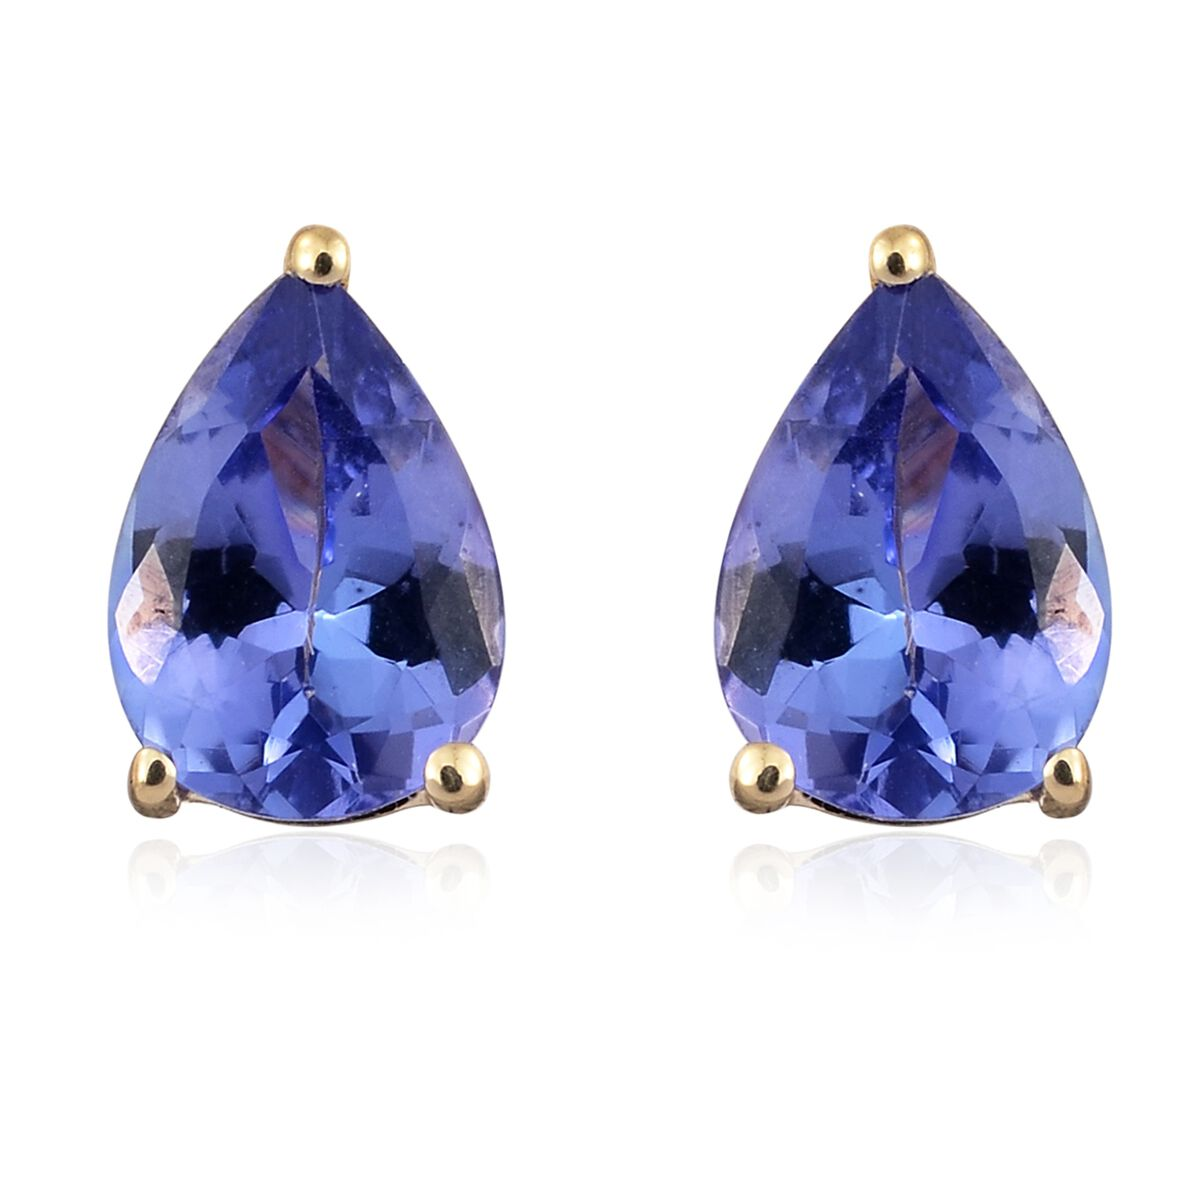 1.25 Carat AA Tanzanite Solitaire Stud Earrings with Push